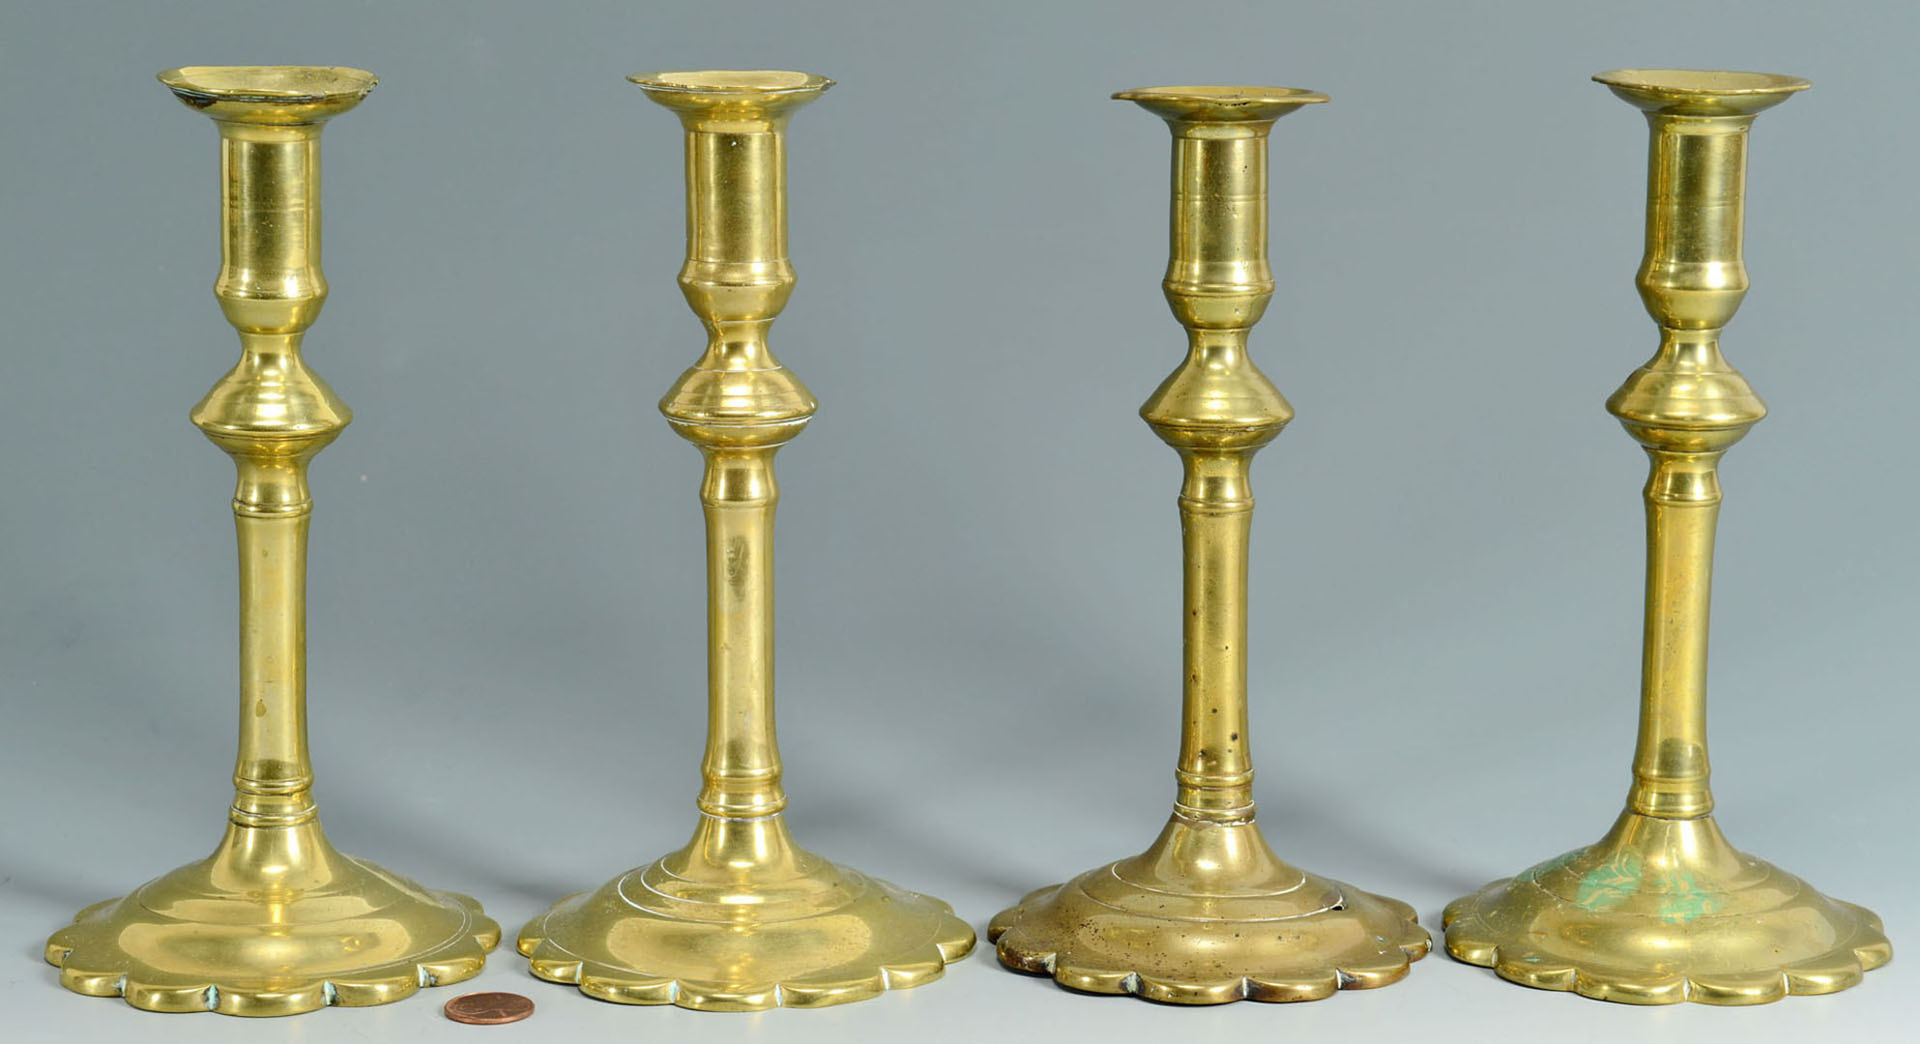 Lot 251: Group of 4 Queen Anne 18th c. Brass Candlesticks